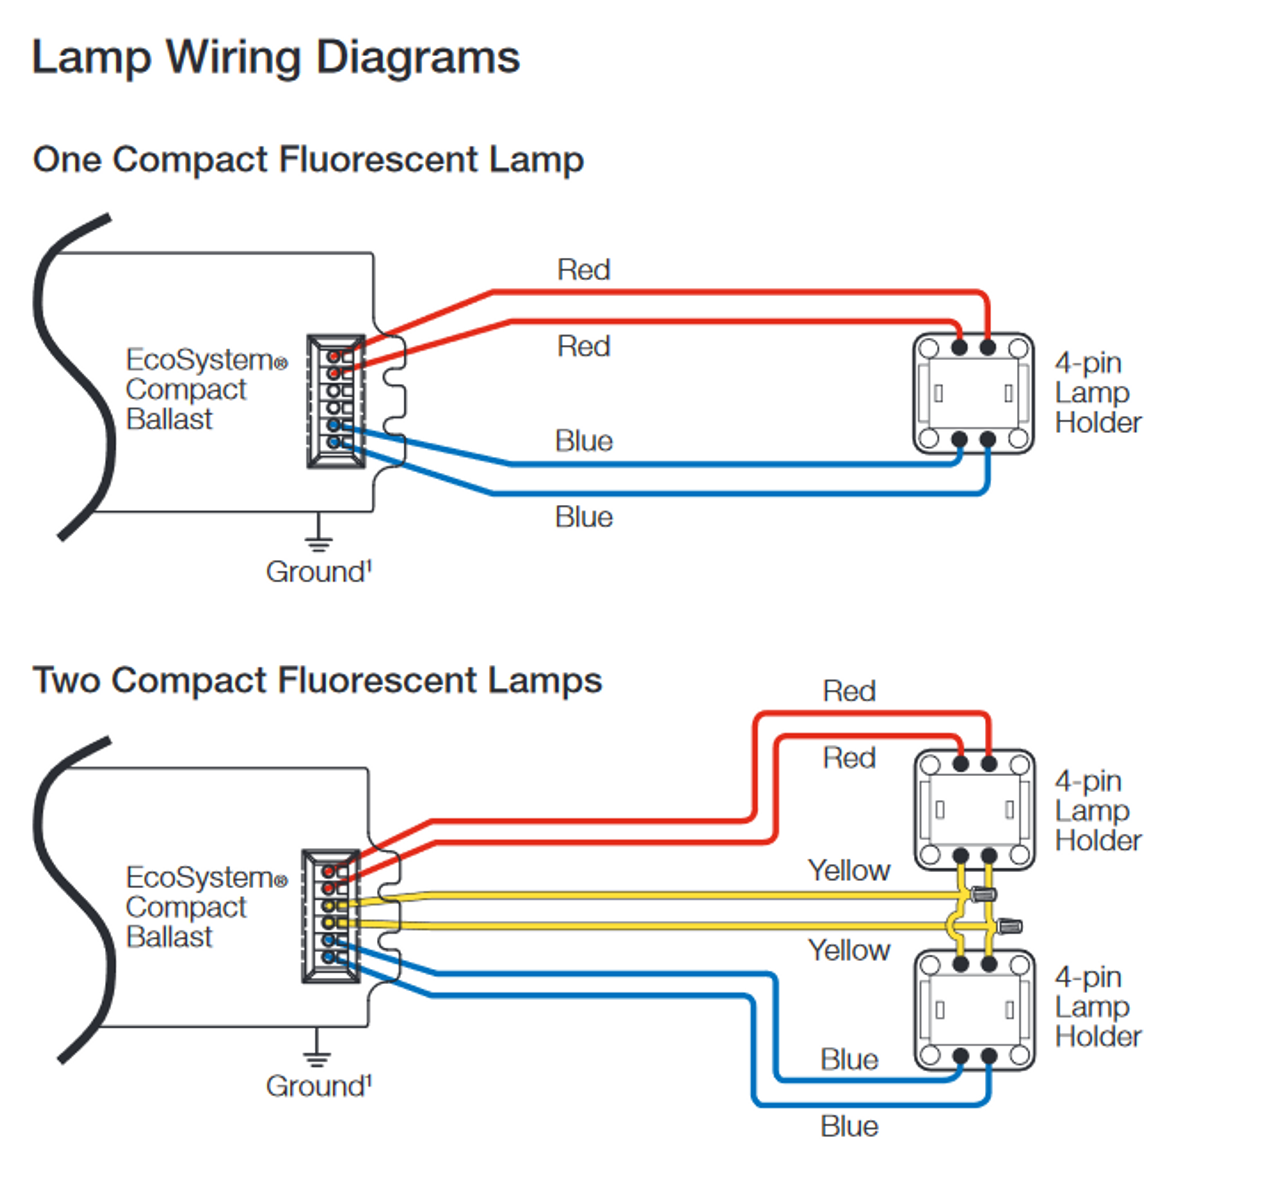 DIAGRAM] Lutron Ecosystem Ballast Wiring Diagram FULL Version HD Quality Wiring  Diagram - HUMANANATOMYDIAGRAMS.K-DANSE.FRDatabase diagramming tool - K-danse.fr